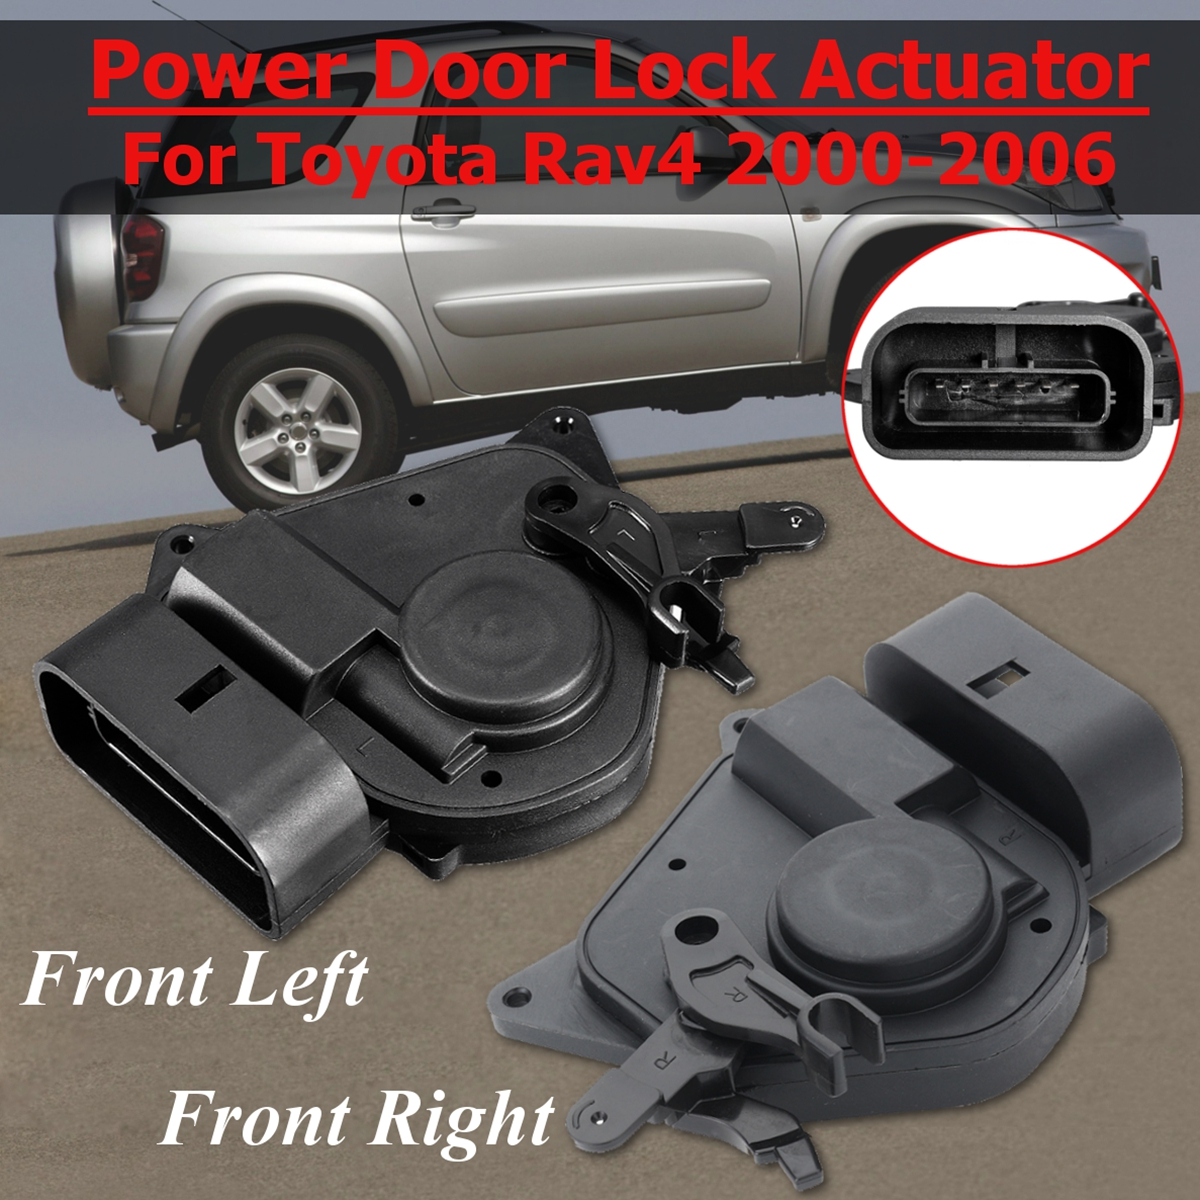 for Toyota RAV4 6912042080/6911042120/69120-42080/69110-42120/746-603 Car Front Left/Right Exterior Power Door Lock Actuator Carfor Toyota RAV4 6912042080/6911042120/69120-42080/69110-42120/746-603 Car Front Left/Right Exterior Power Door Lock Actuator Car